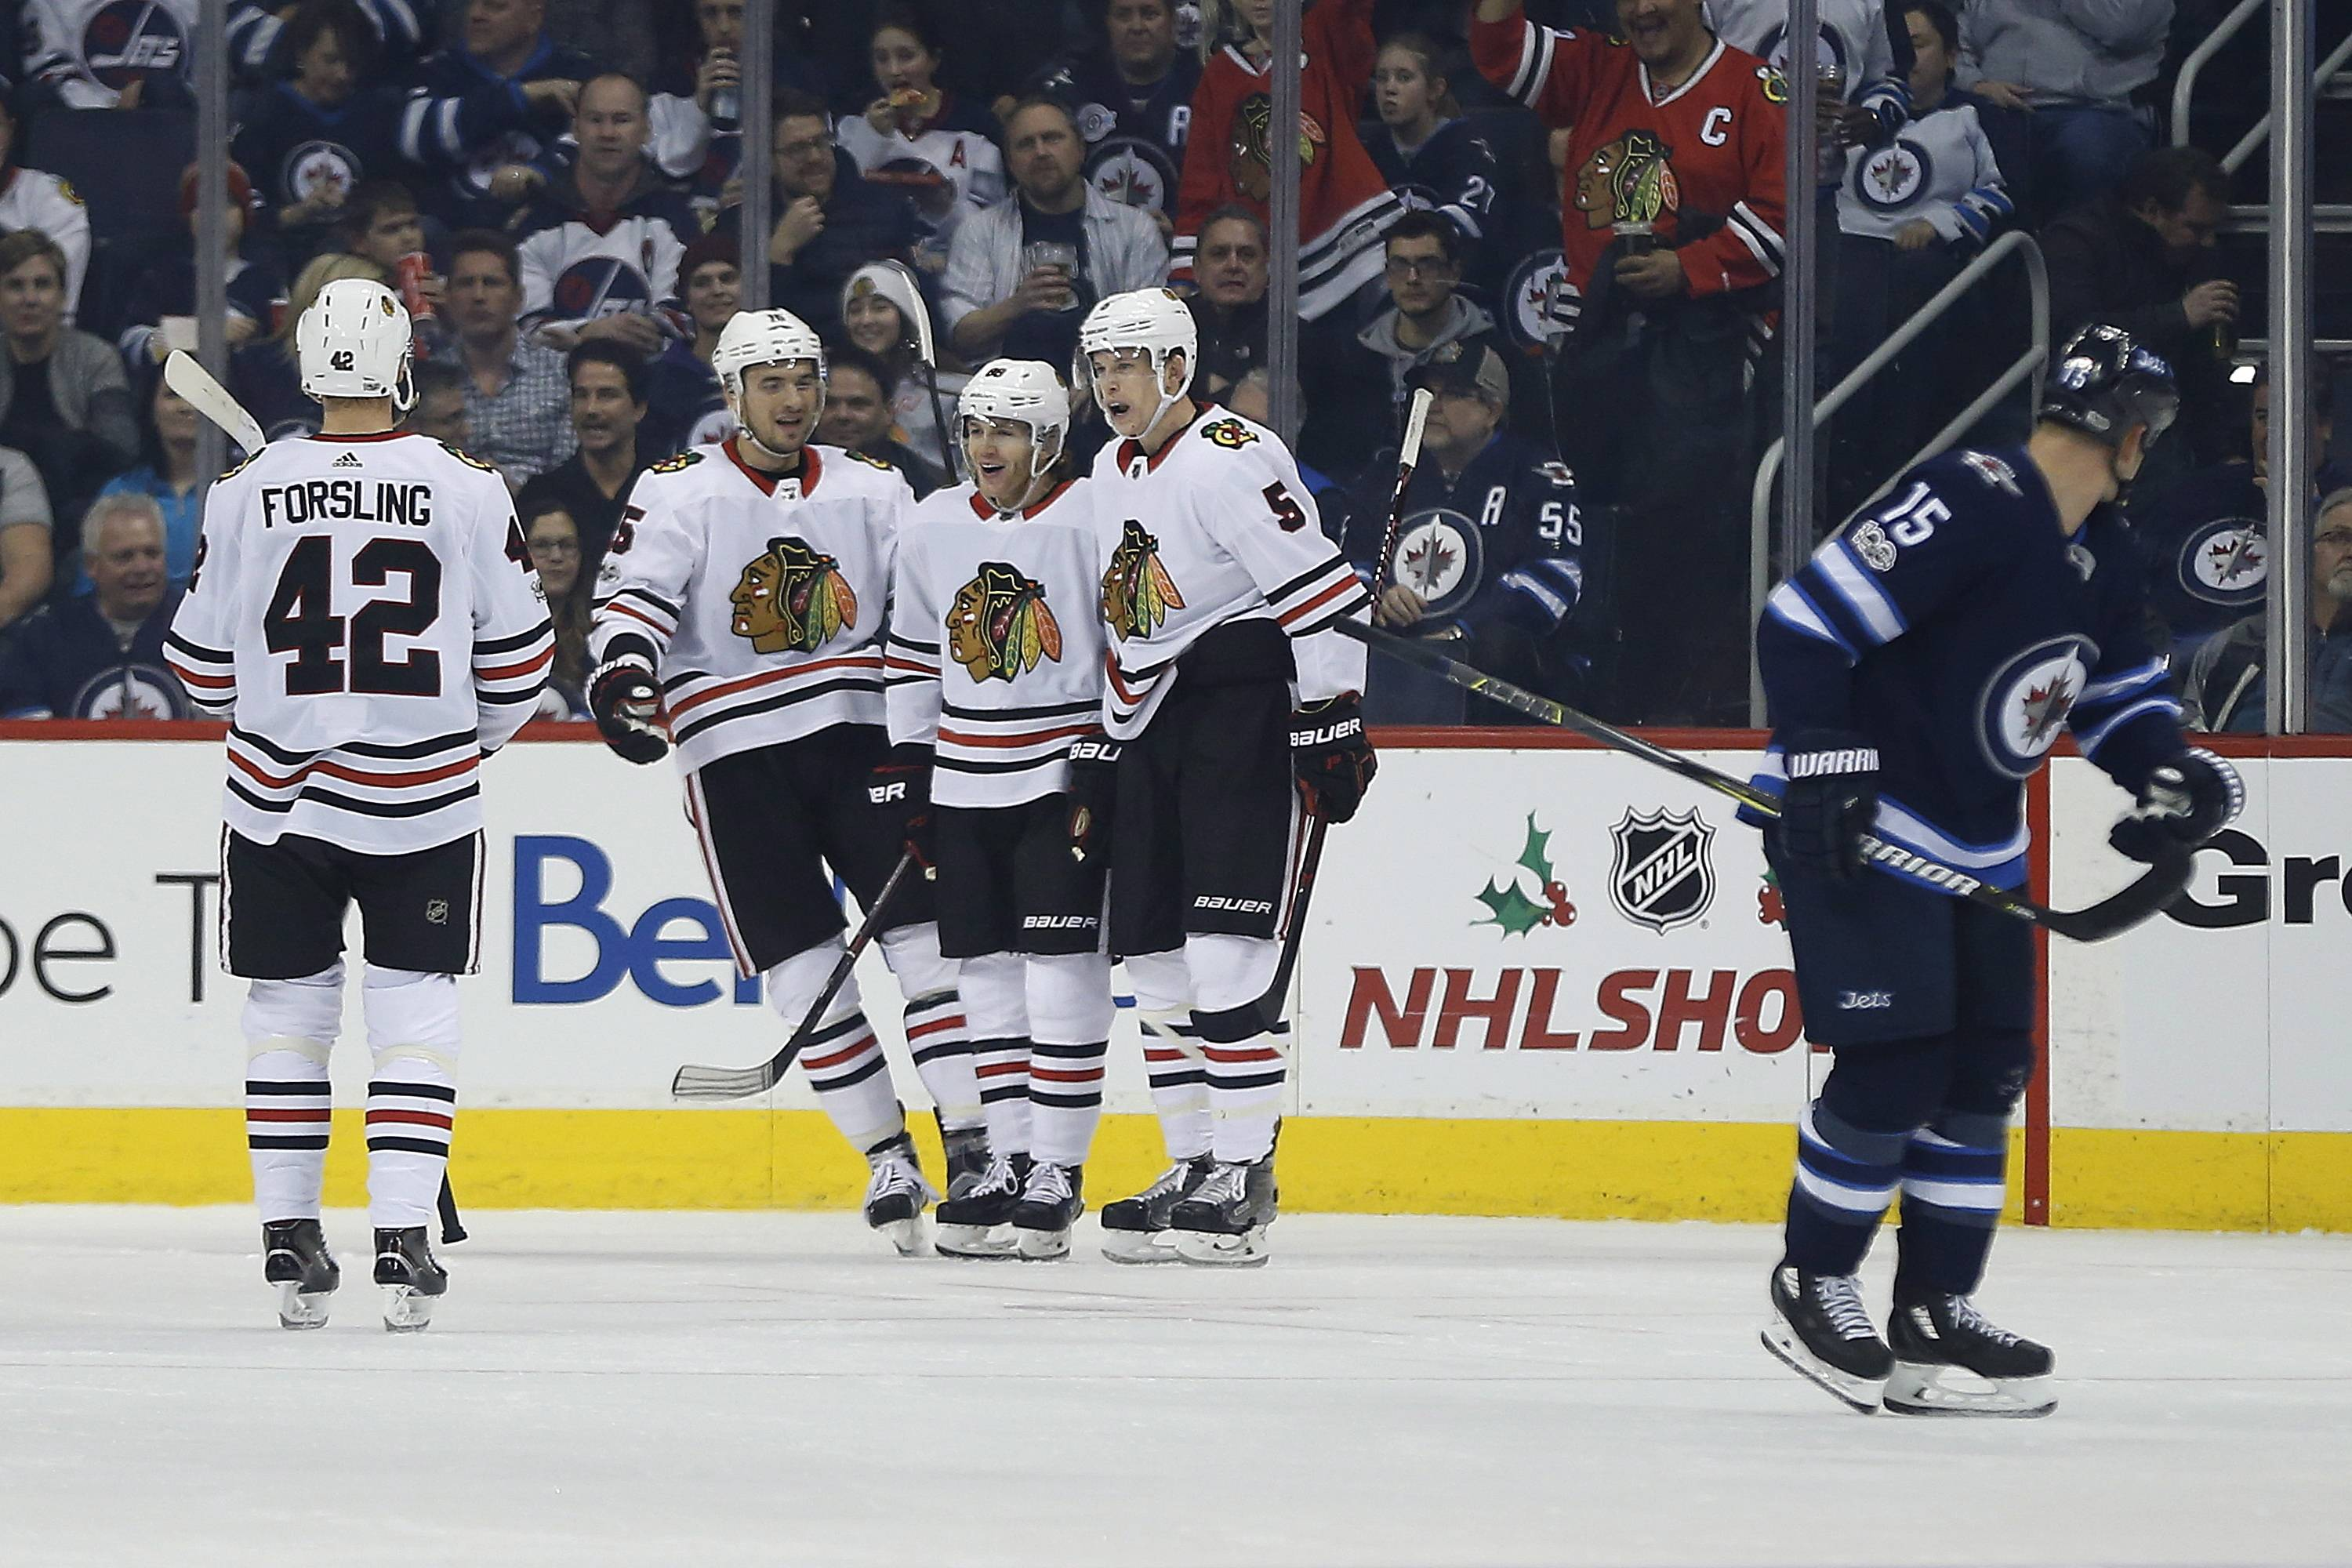 From left to right, Chicago Blackhawks' Gustav Forsling (42), Artem Anisimov (15), Patrick Kane (88) and Connor Murphy (5) celebrate Kane's goal against the Winnipeg Jets during second-period NHL hockey game action in Winnipeg, Manitoba, Thursday, Dec. 14, 2017. (John Woods/The Canadian Press via AP)